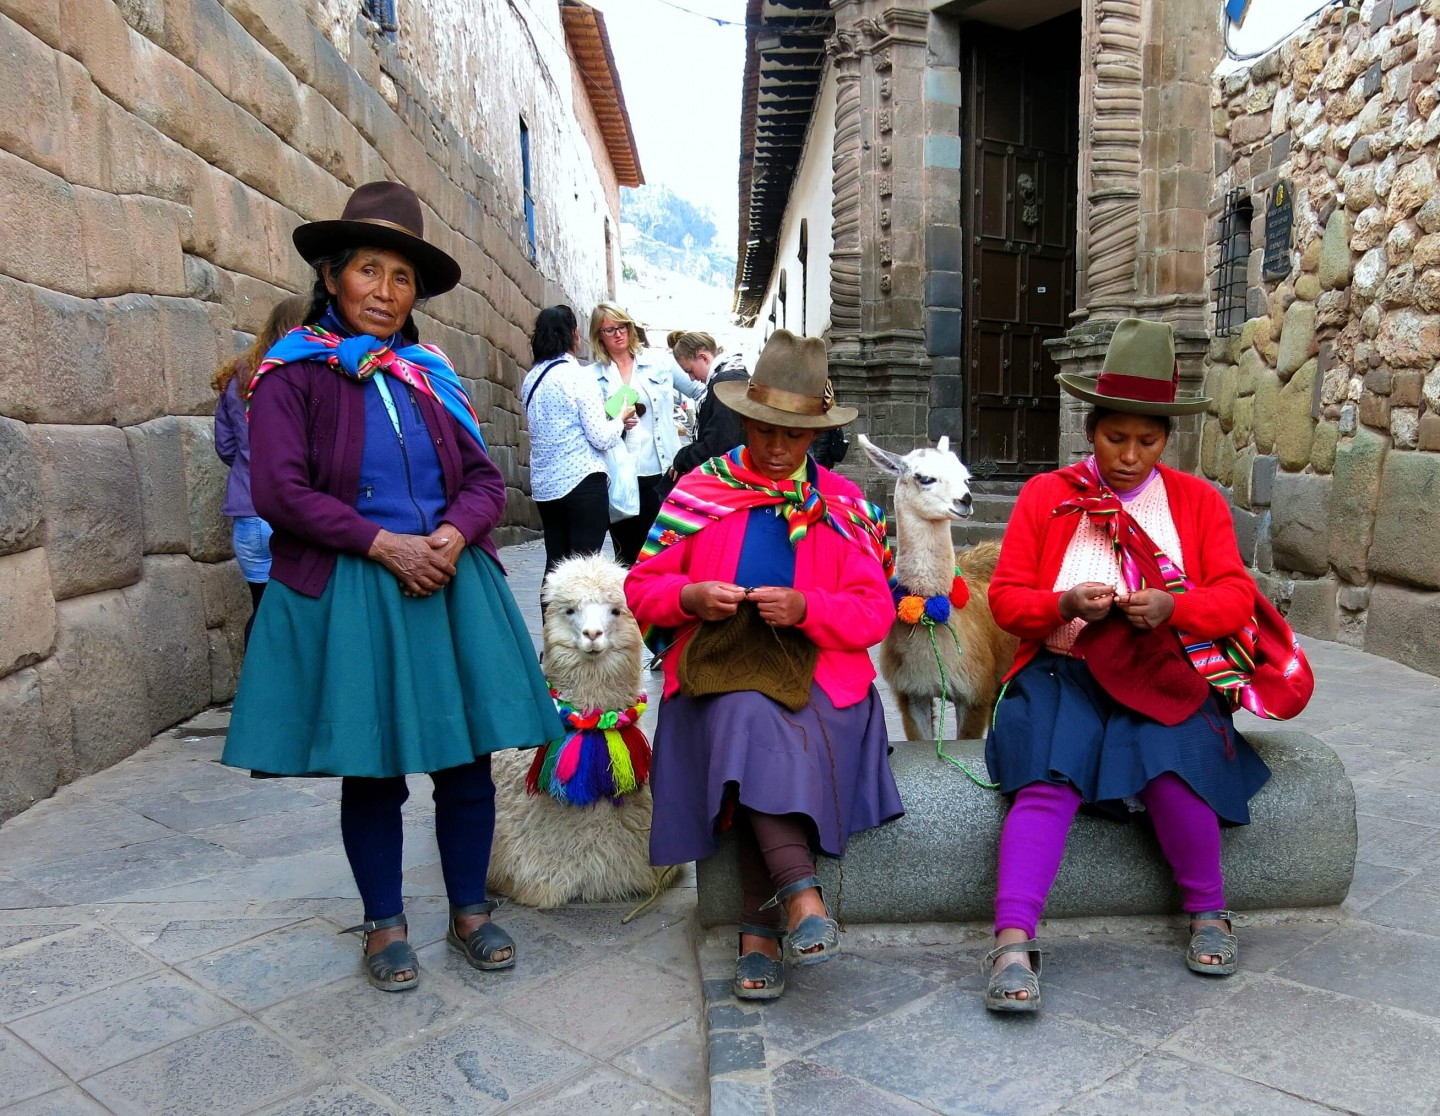 Inca women in Cusco Peru